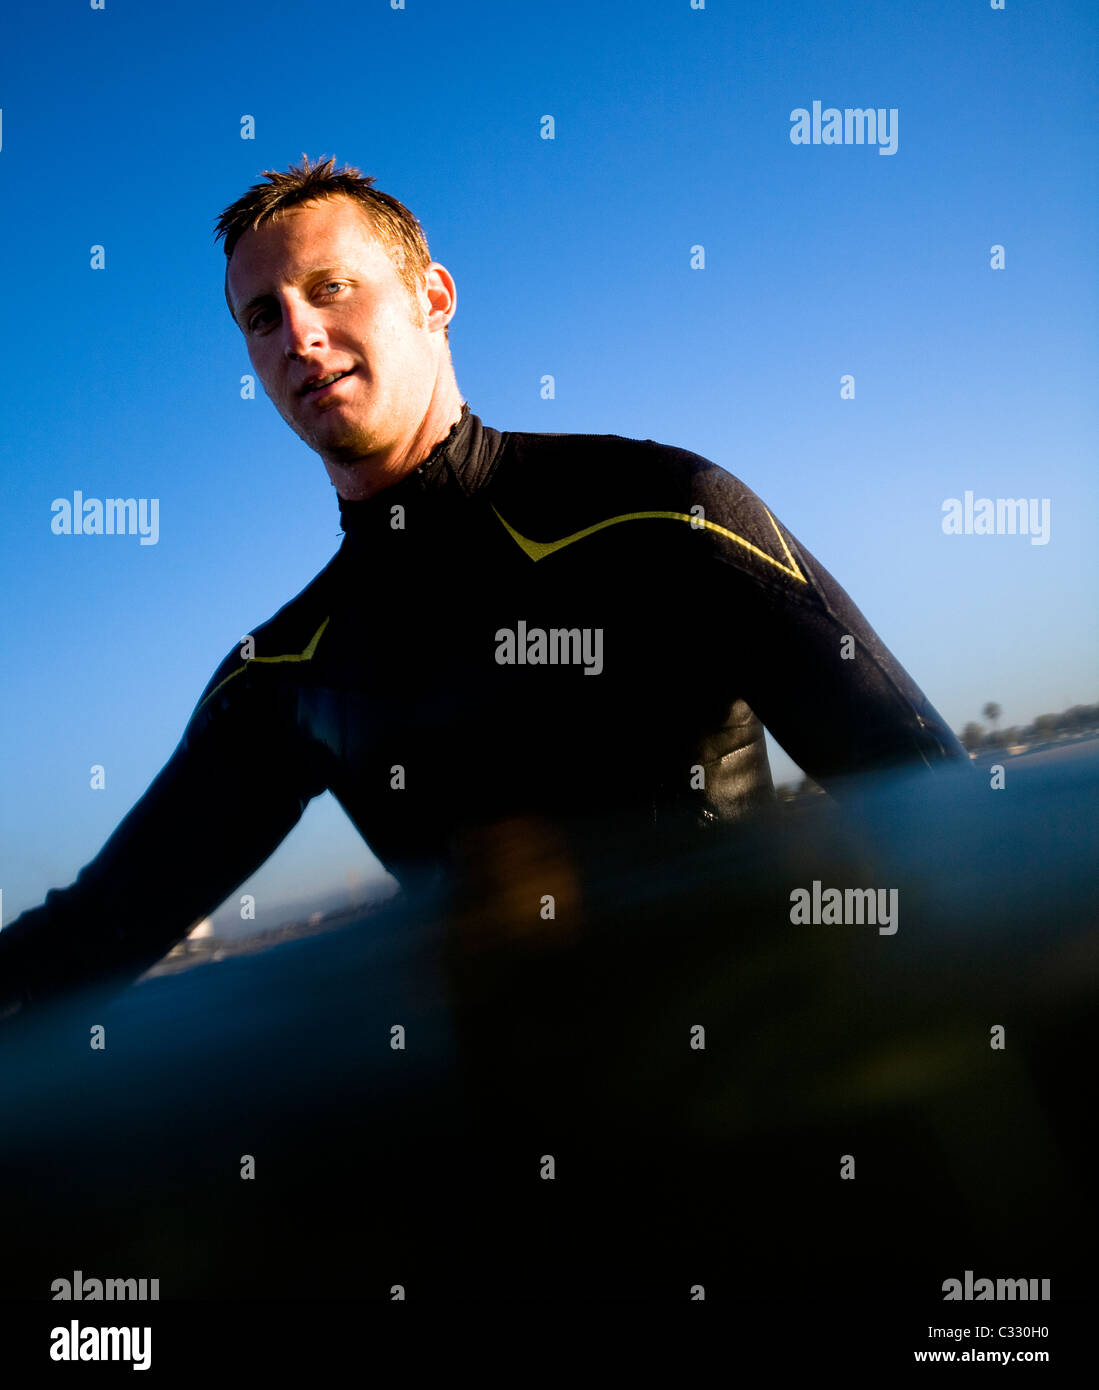 A young man in a wetsuit poses for a portrait while surfing at Port Hueneme, California. - Stock Image